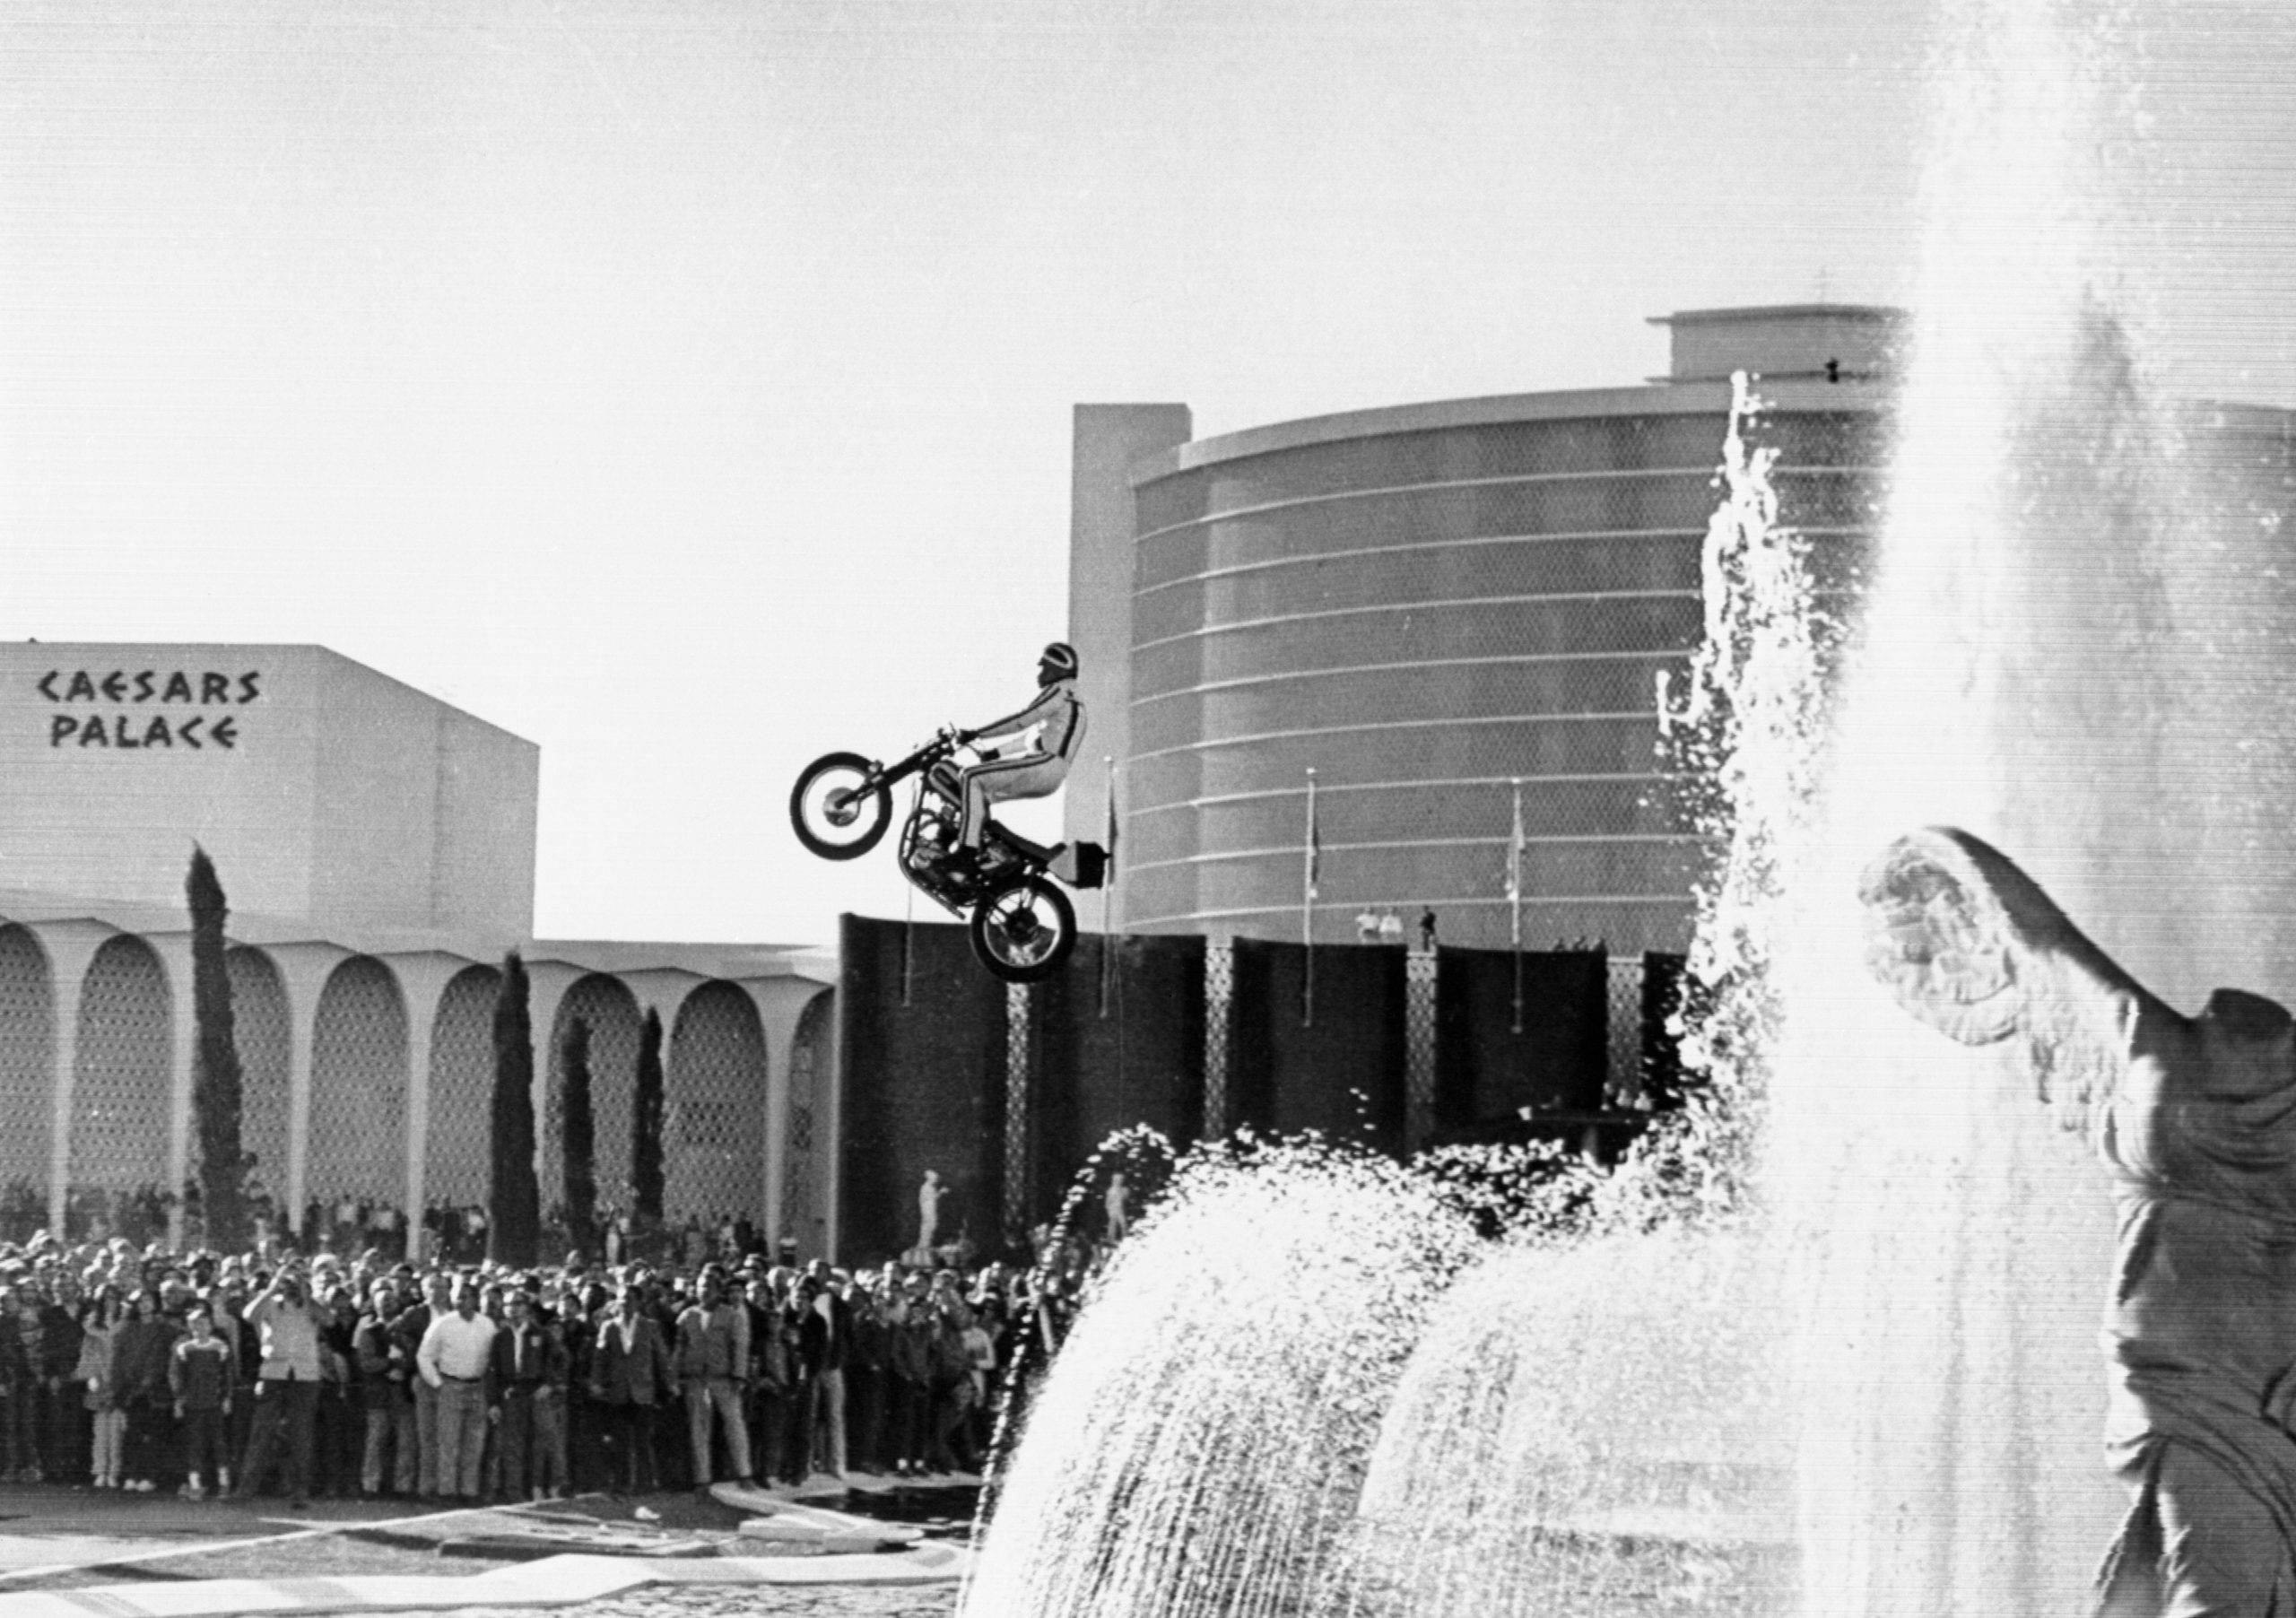 Evel Knievel Jumping Motorcycle over Caesars Palace Fountain